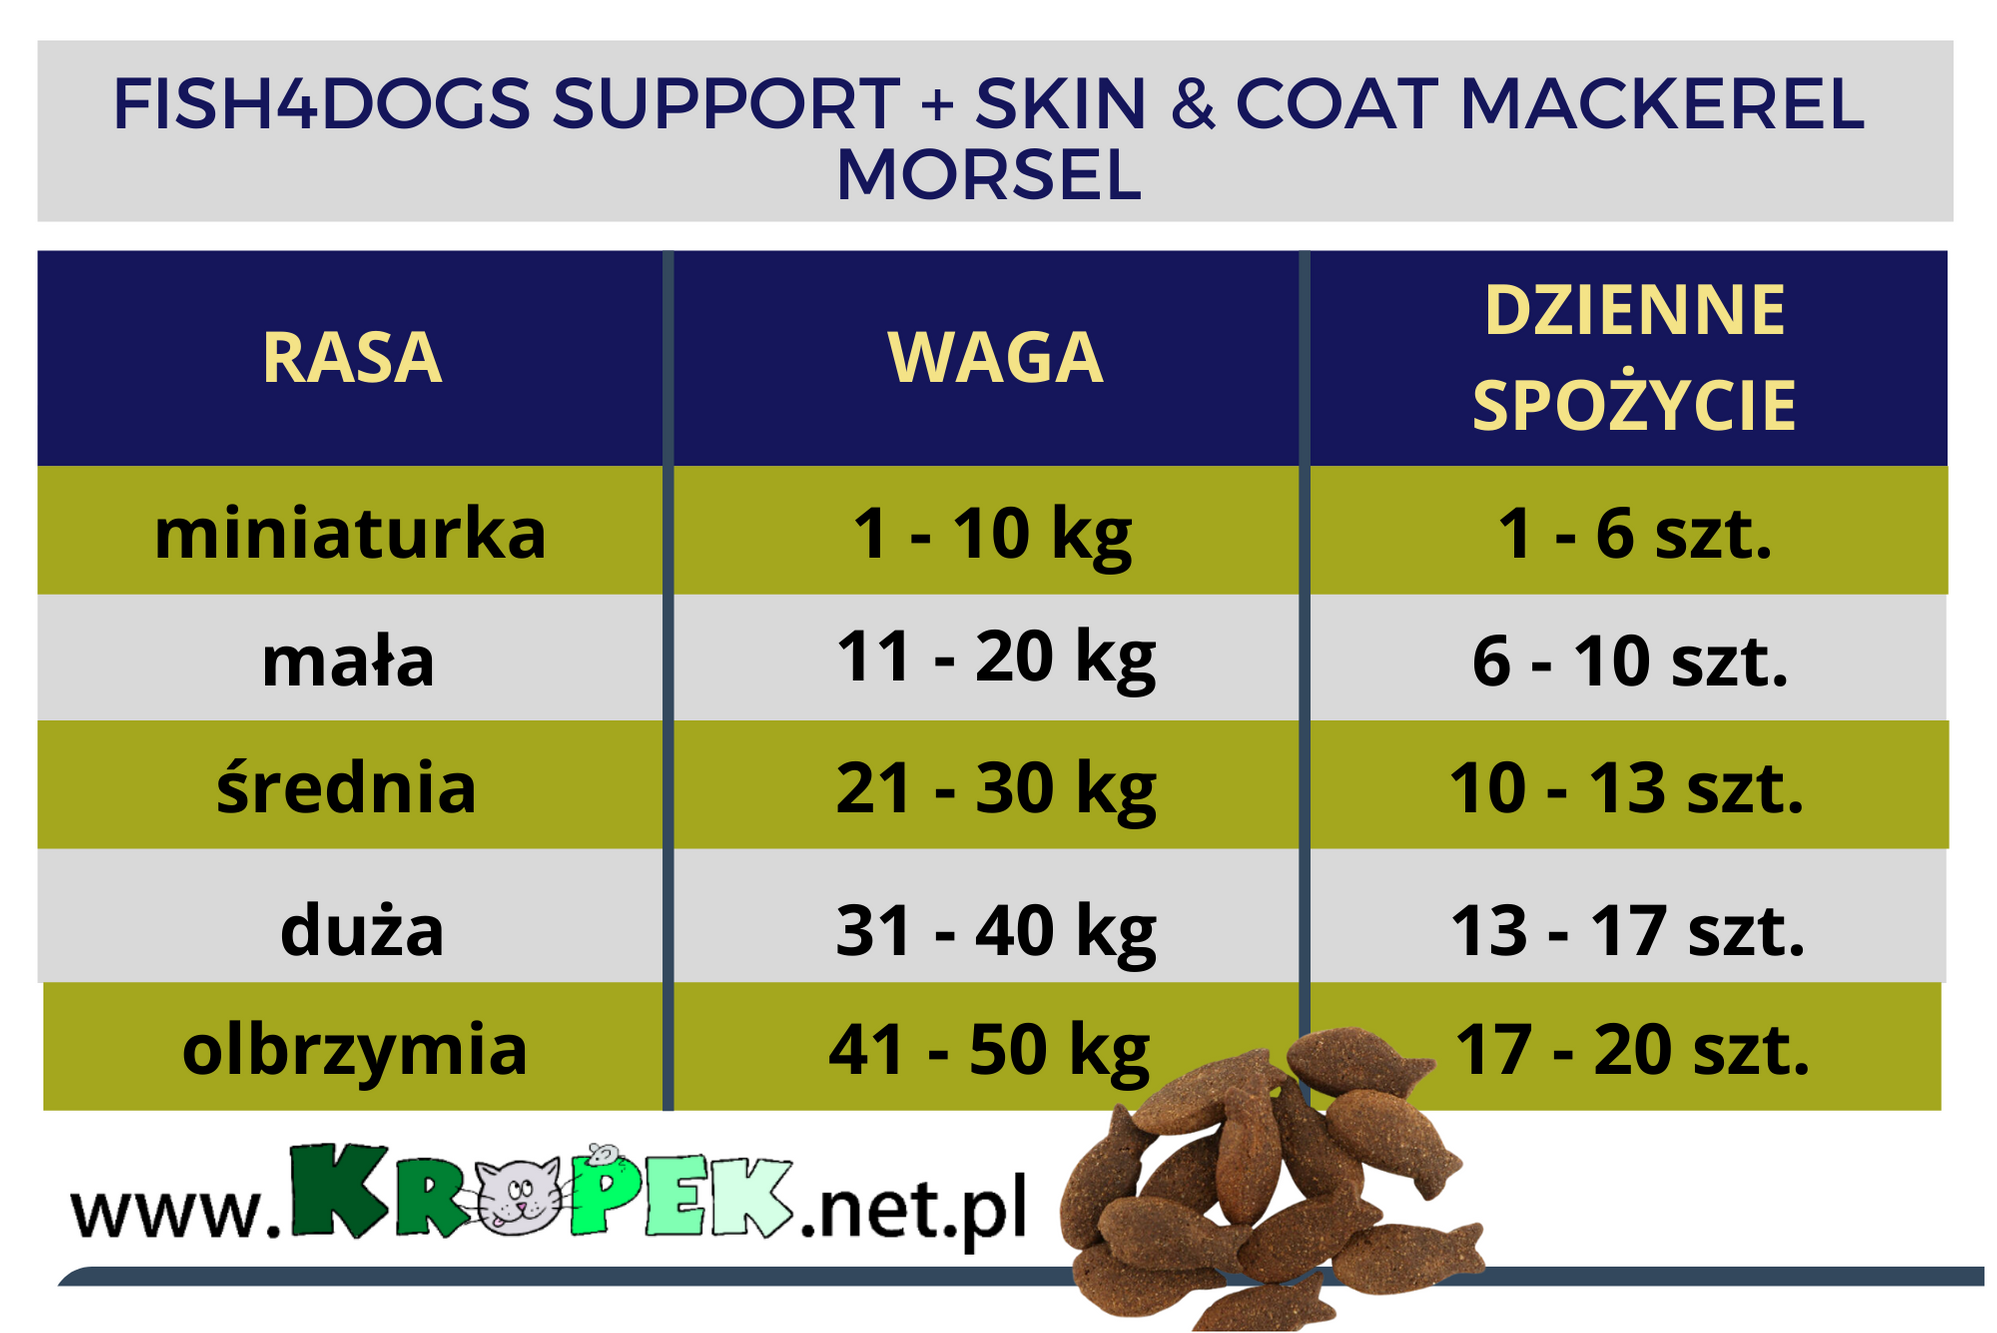 FISH4DOGS SUPPORT + SKIN & COAT MACKEREL MORSELS